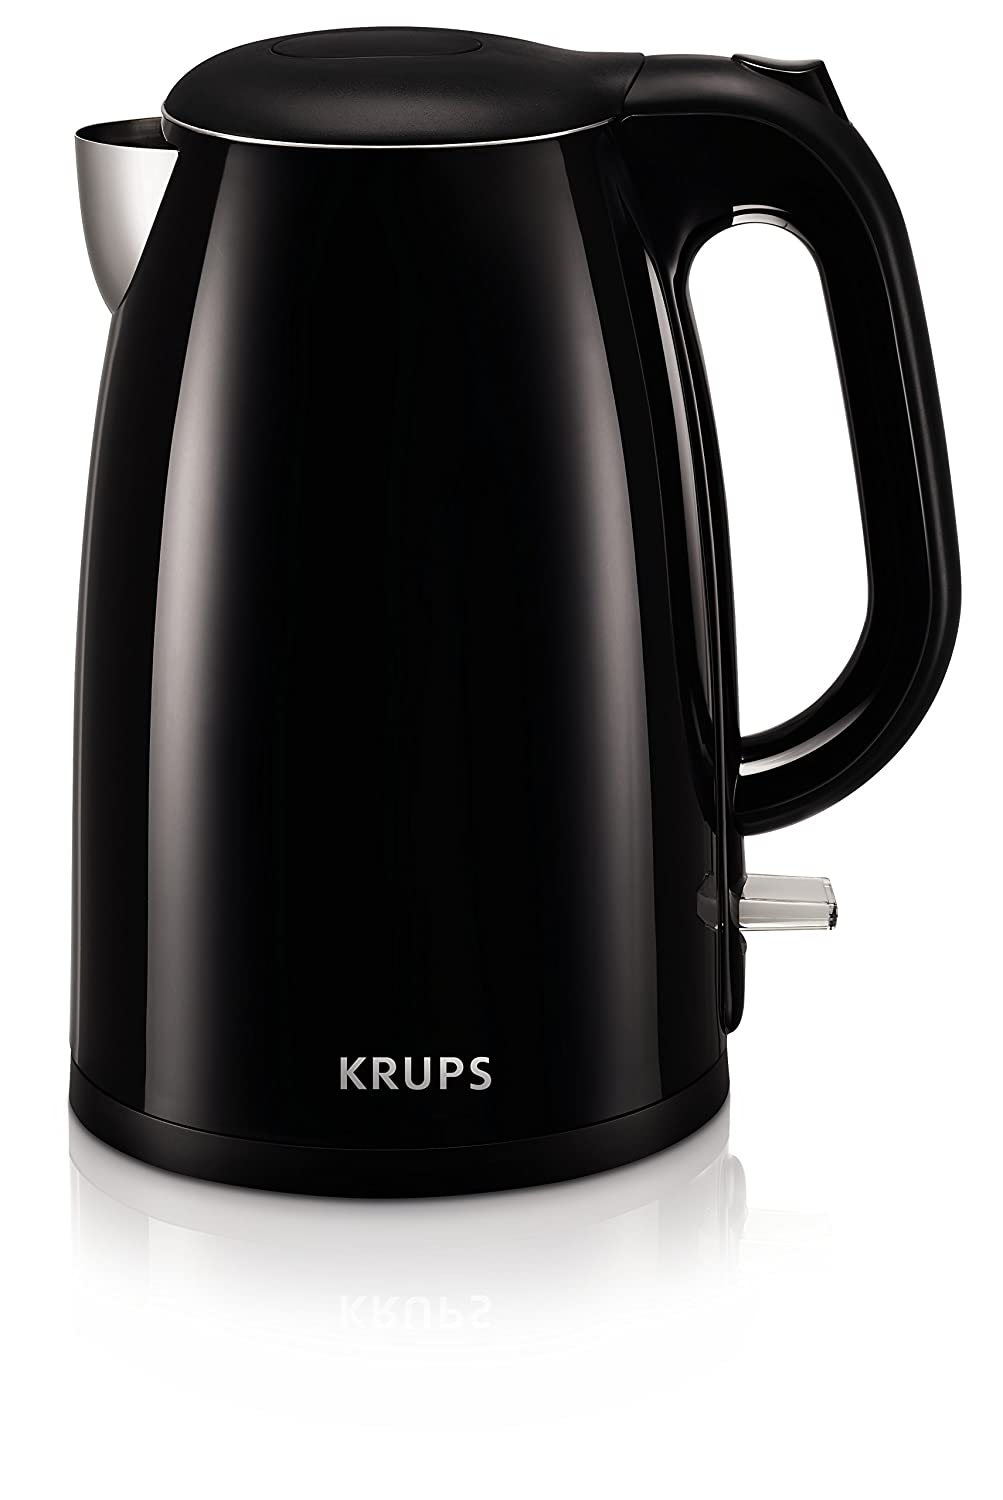 KRUPS BW26 Cool-touch Stainless Steel Double Wall Electric Kettle 1.5L Black